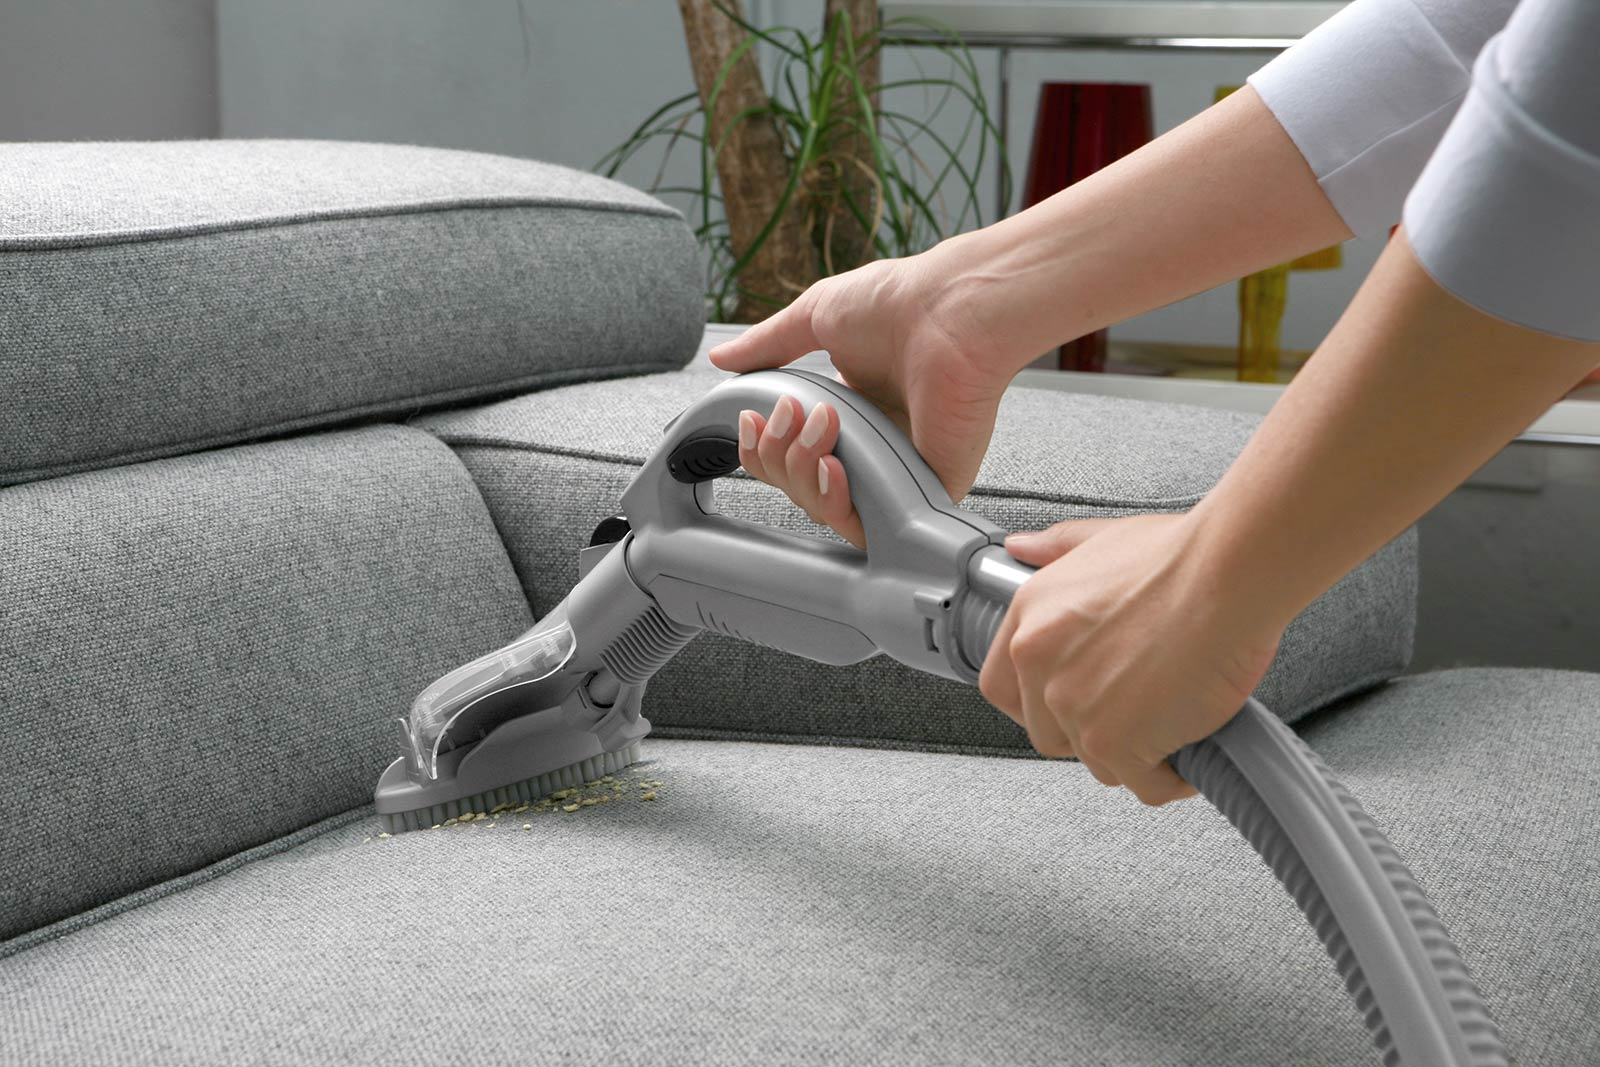 Sofa Cleaning Tips Products To Clean